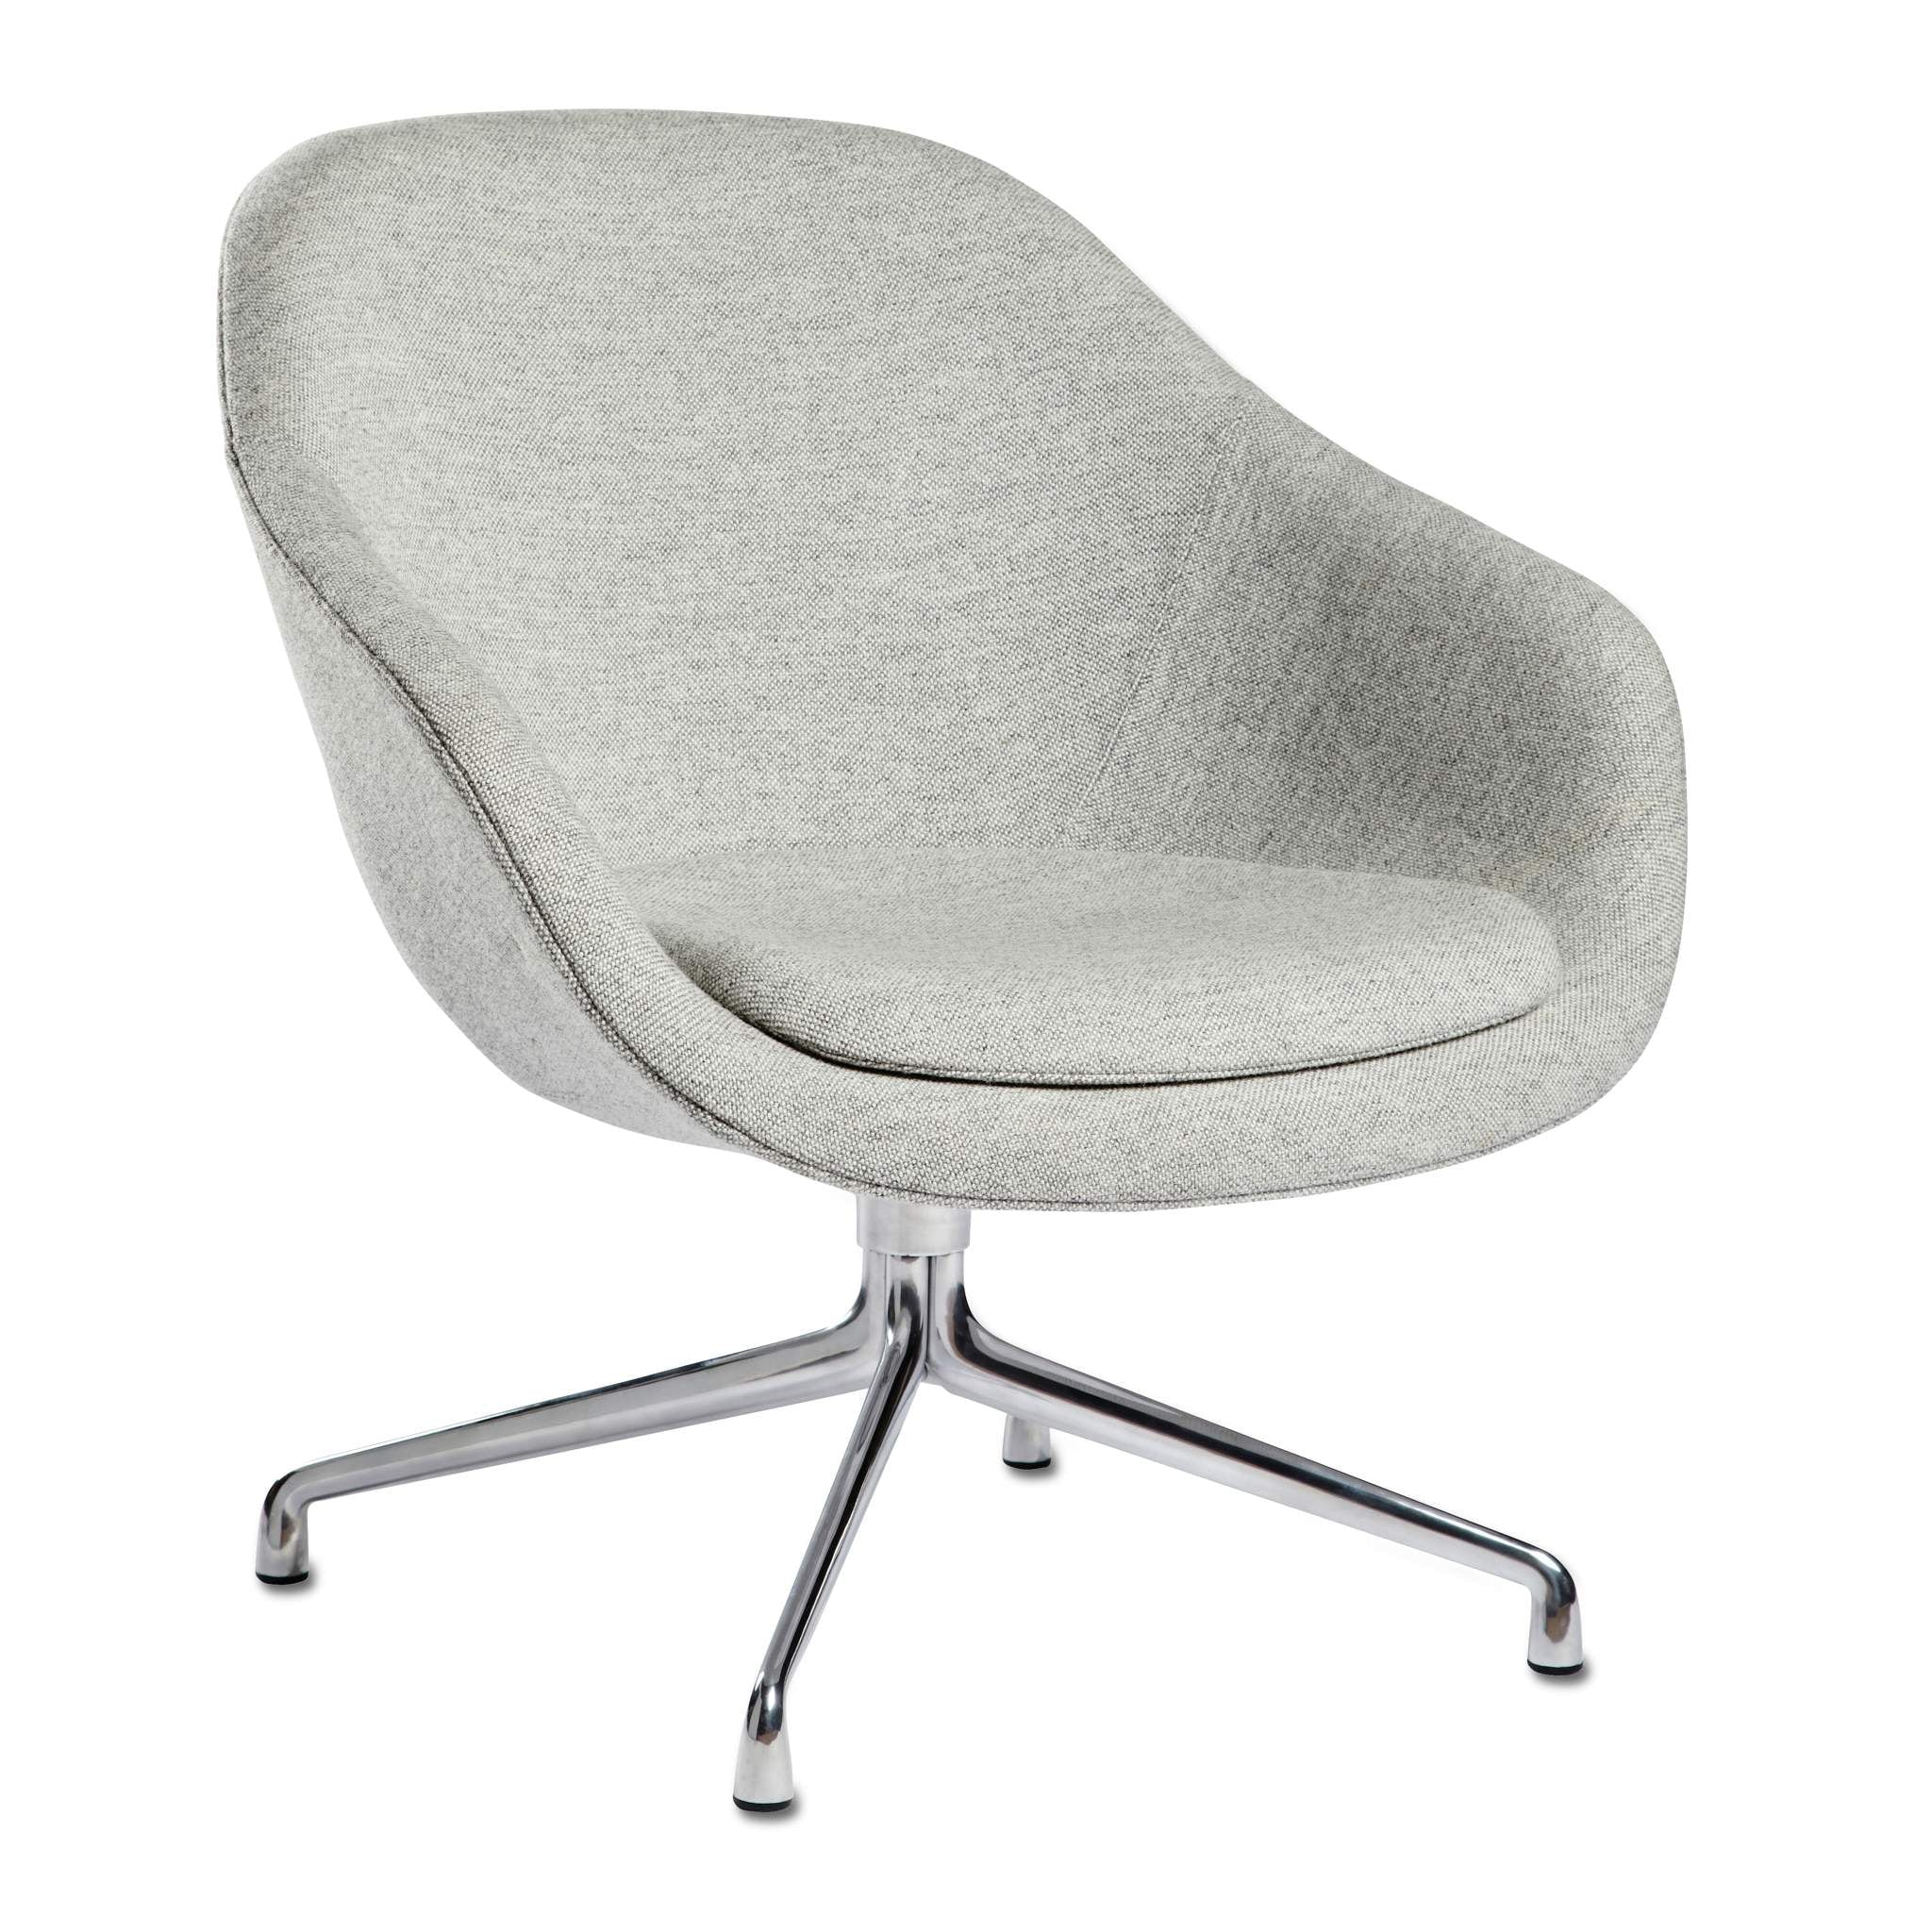 About A Lounge Chair Aal 81 By Hay Haus 174